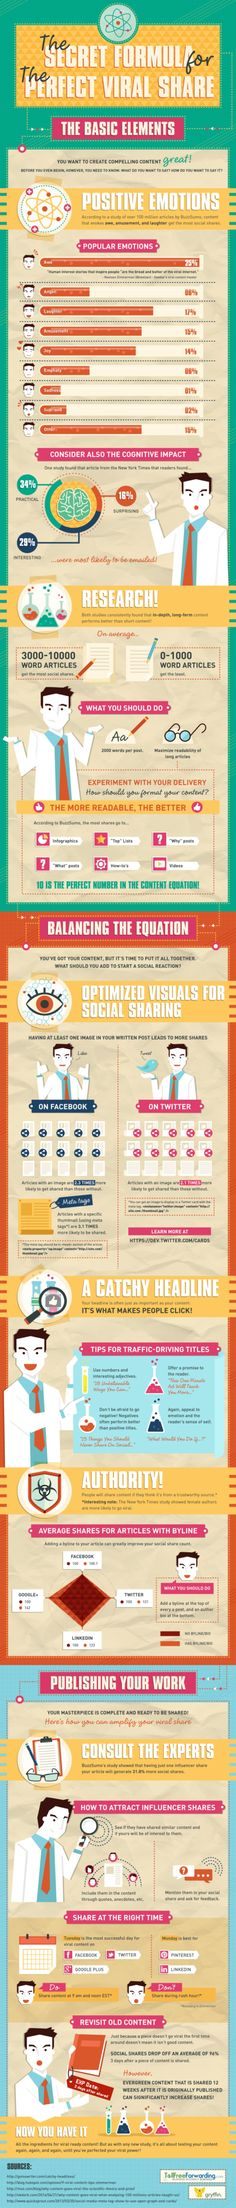 The Secret Formula For The Perfect Viral Share [INFOGRAPHIC]